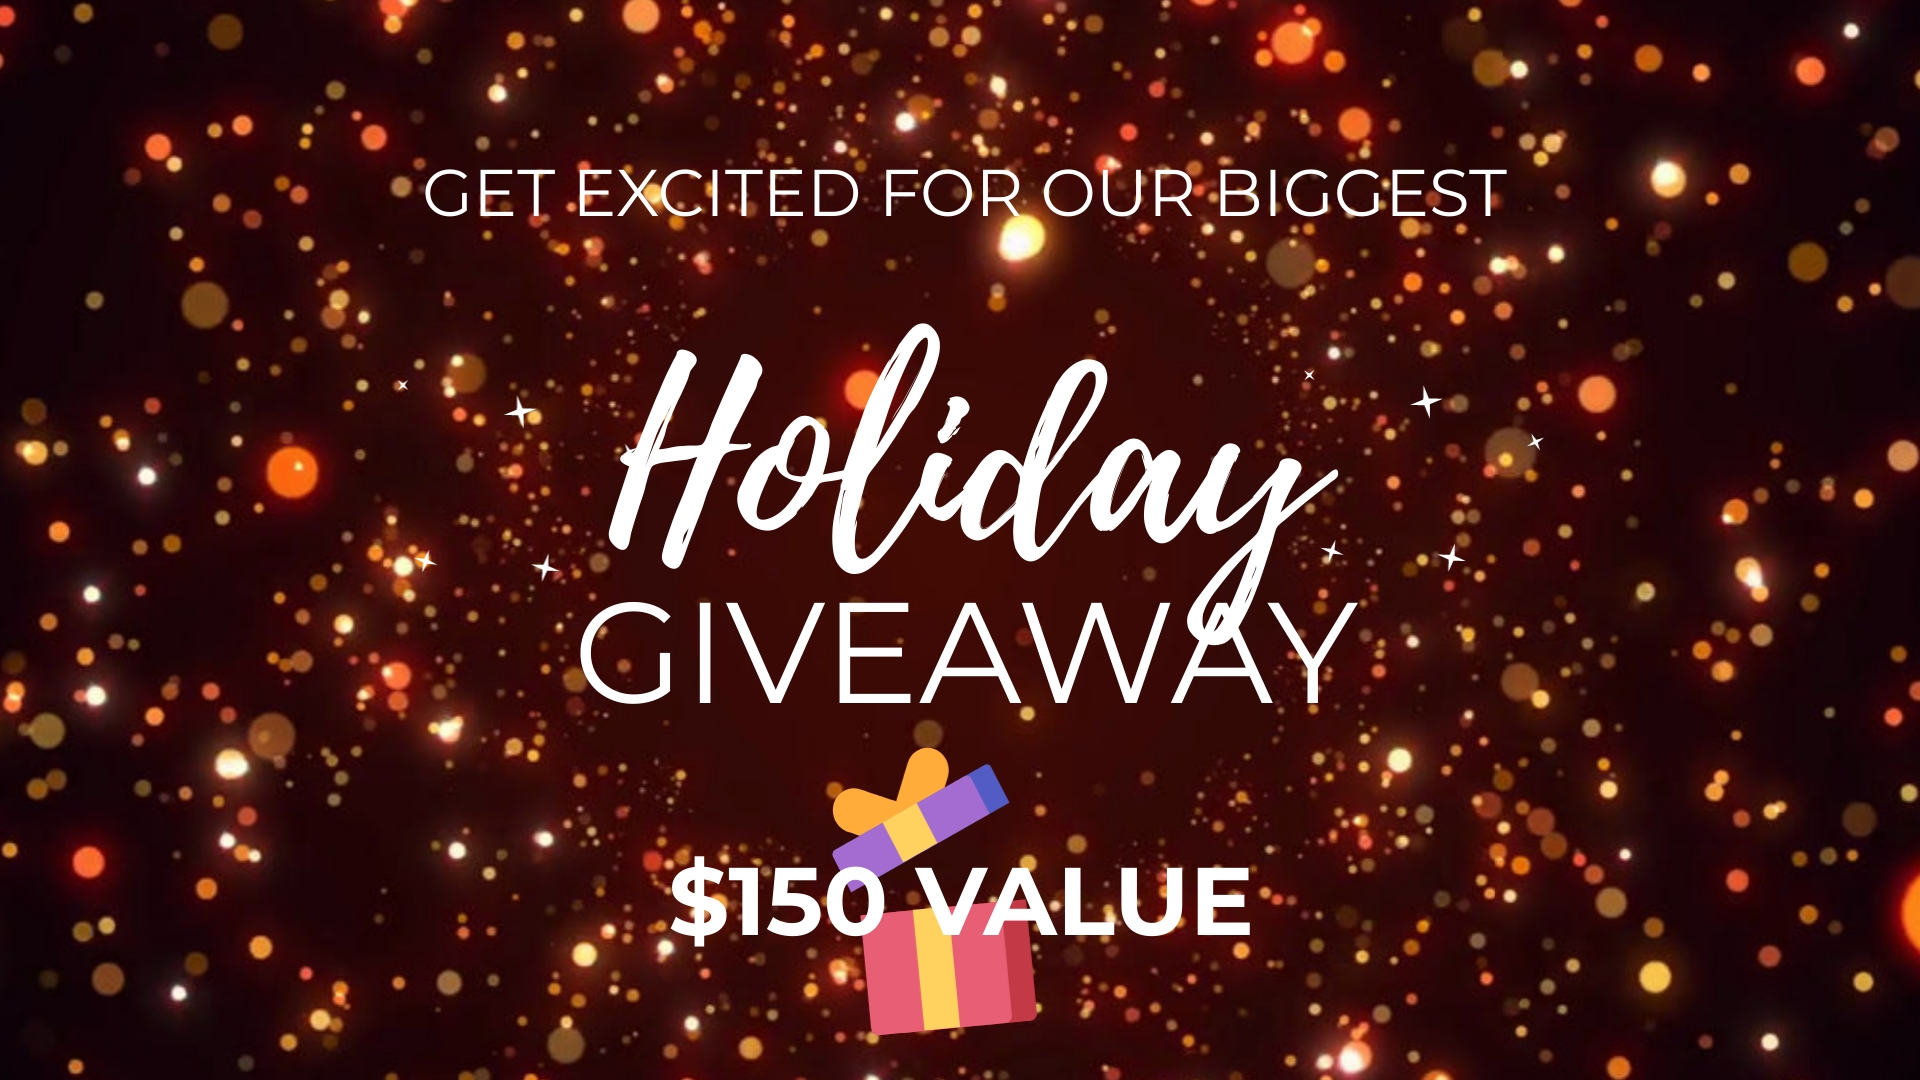 Giveaway Facebook Video Ad Template